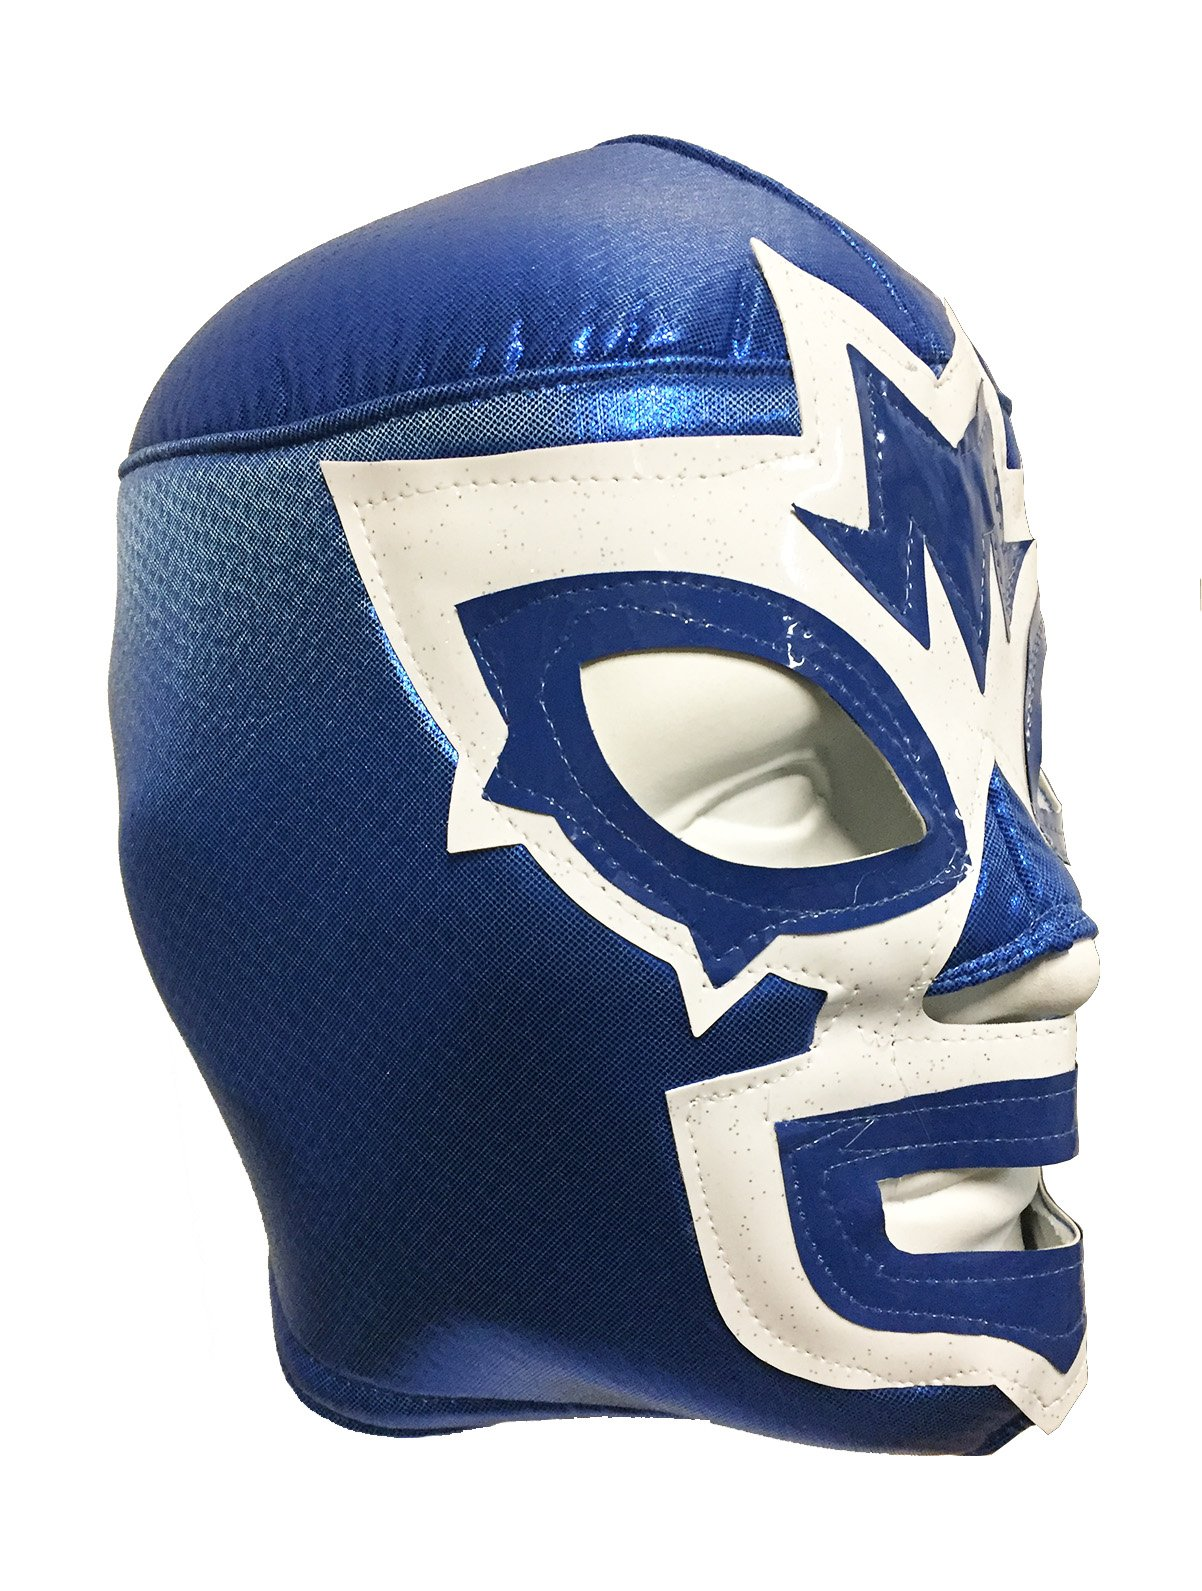 MASK MANIAC Adult Lucha Libre Wrestling Mask (pro-fit) Costume Wear - Blue/White by Mask Maniac